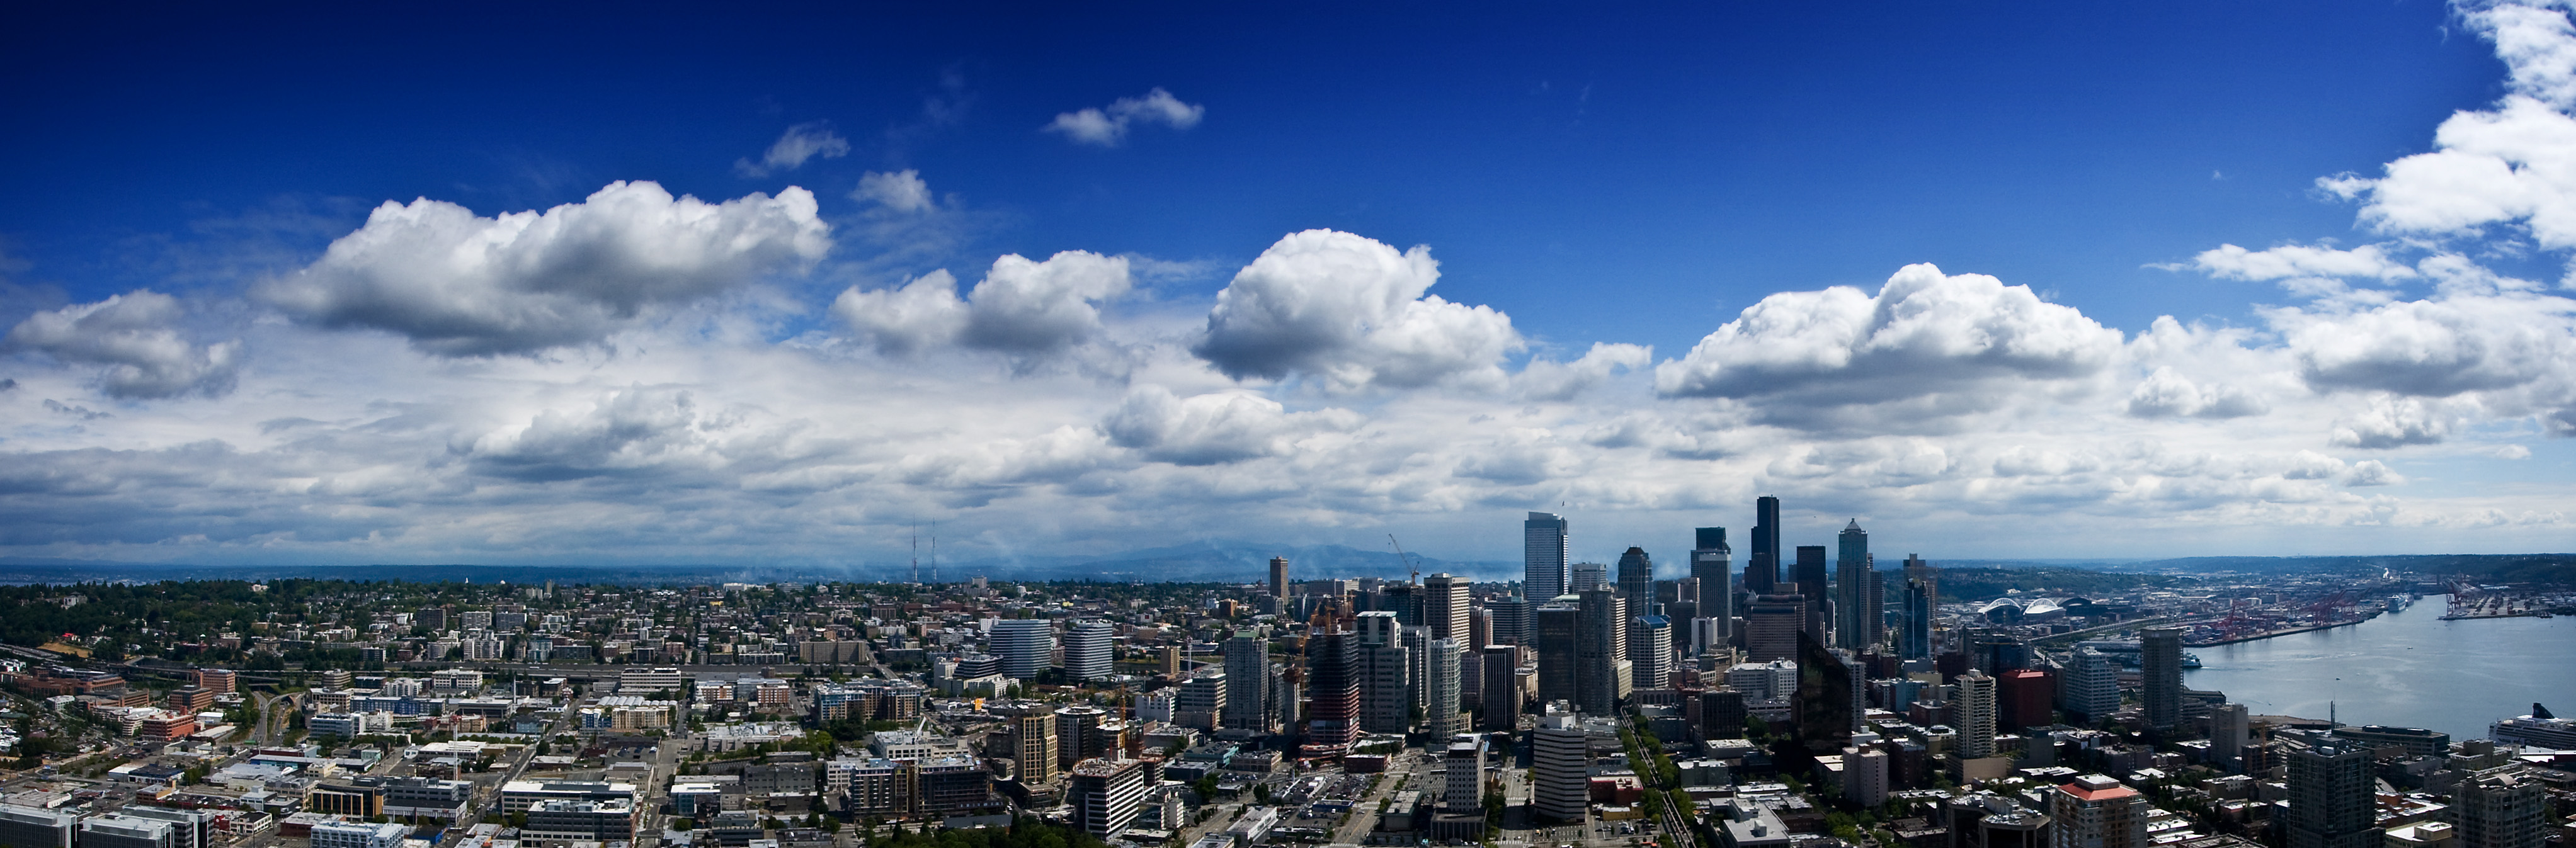 Lucky 8 Auto >> Seattle Panorama from the Space Needle | Flickr - Photo Sharing!